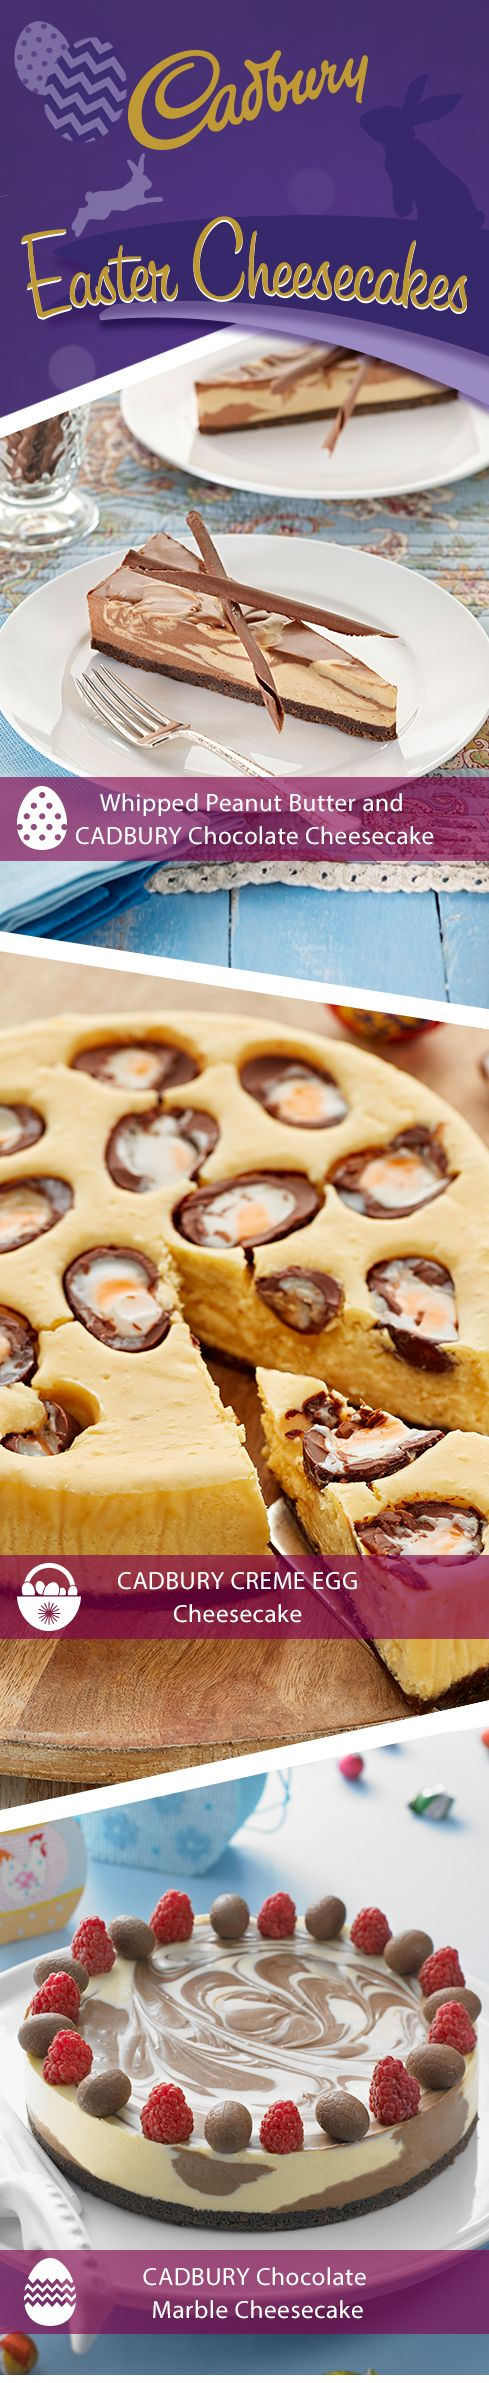 Add a touch of style to any #Easter table with these delectable #CADBURY cheesecakes. Great tasting and easy-to-make, everyone will be talking about them! #Cadburyrecipes #makeitdelicious #chocolate #Easter #cheesecake #Baking